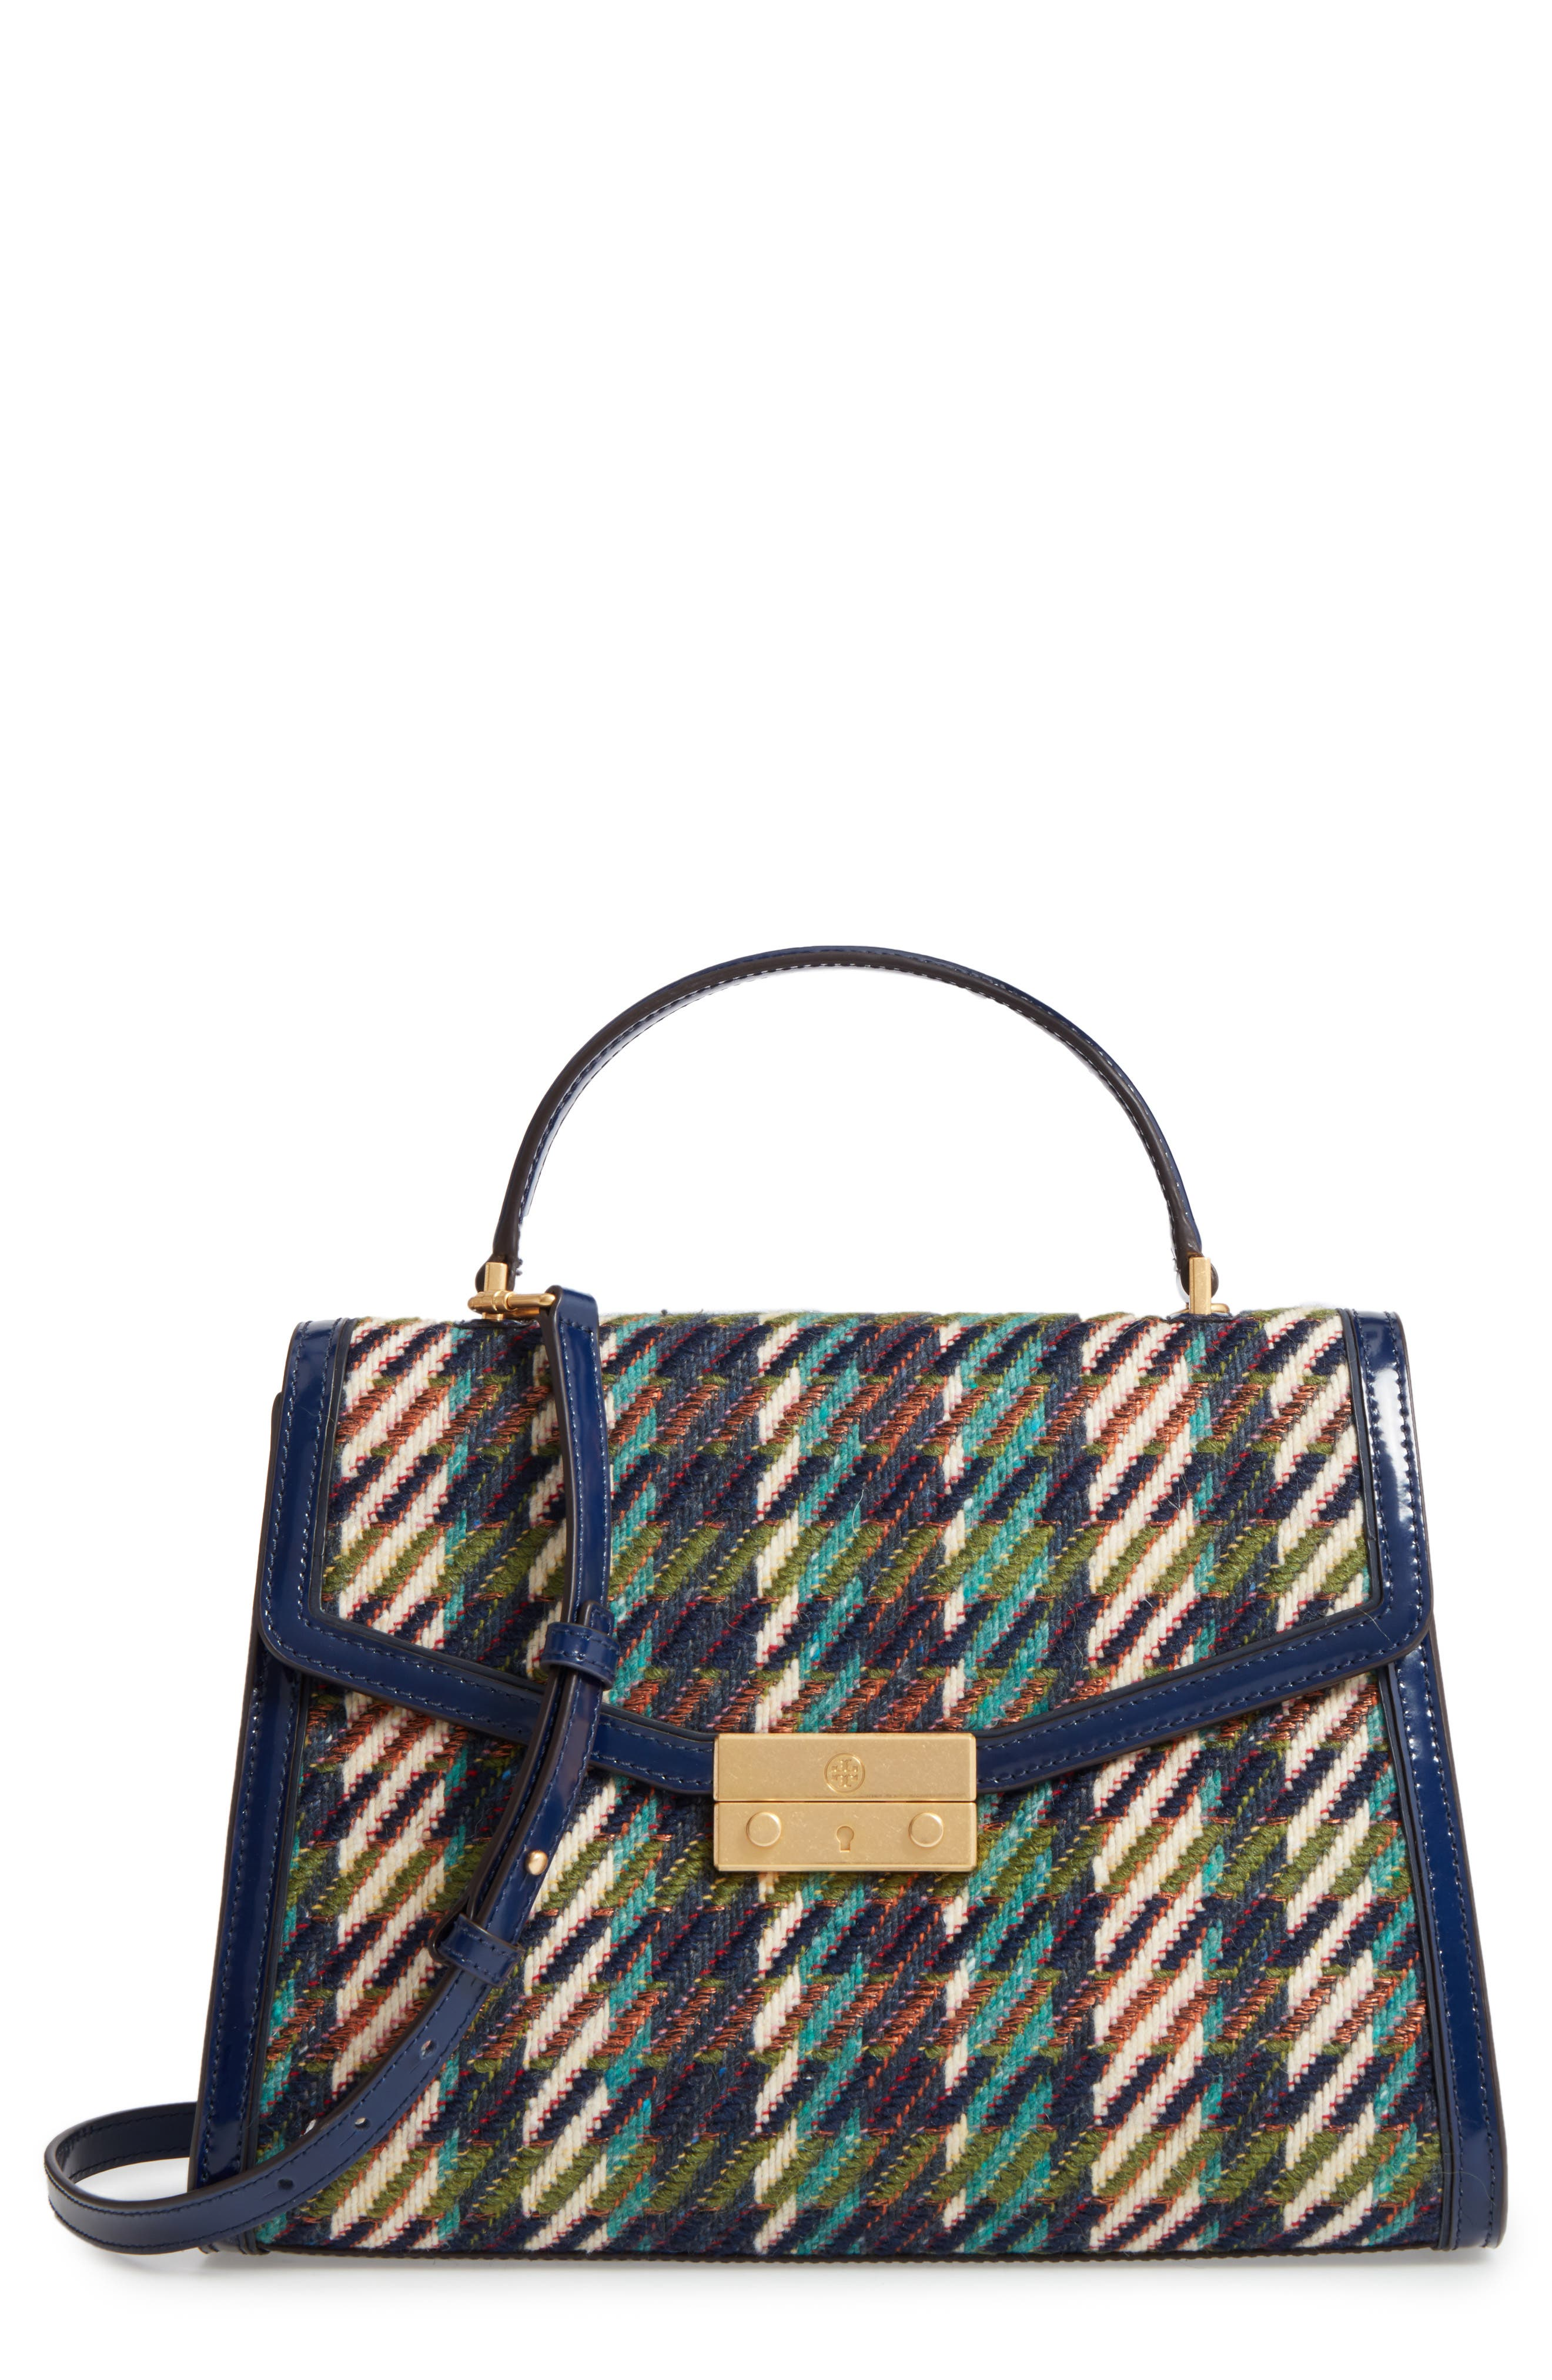 Main Image - Tory Burch Juliette Tweed Top Handle Satchel